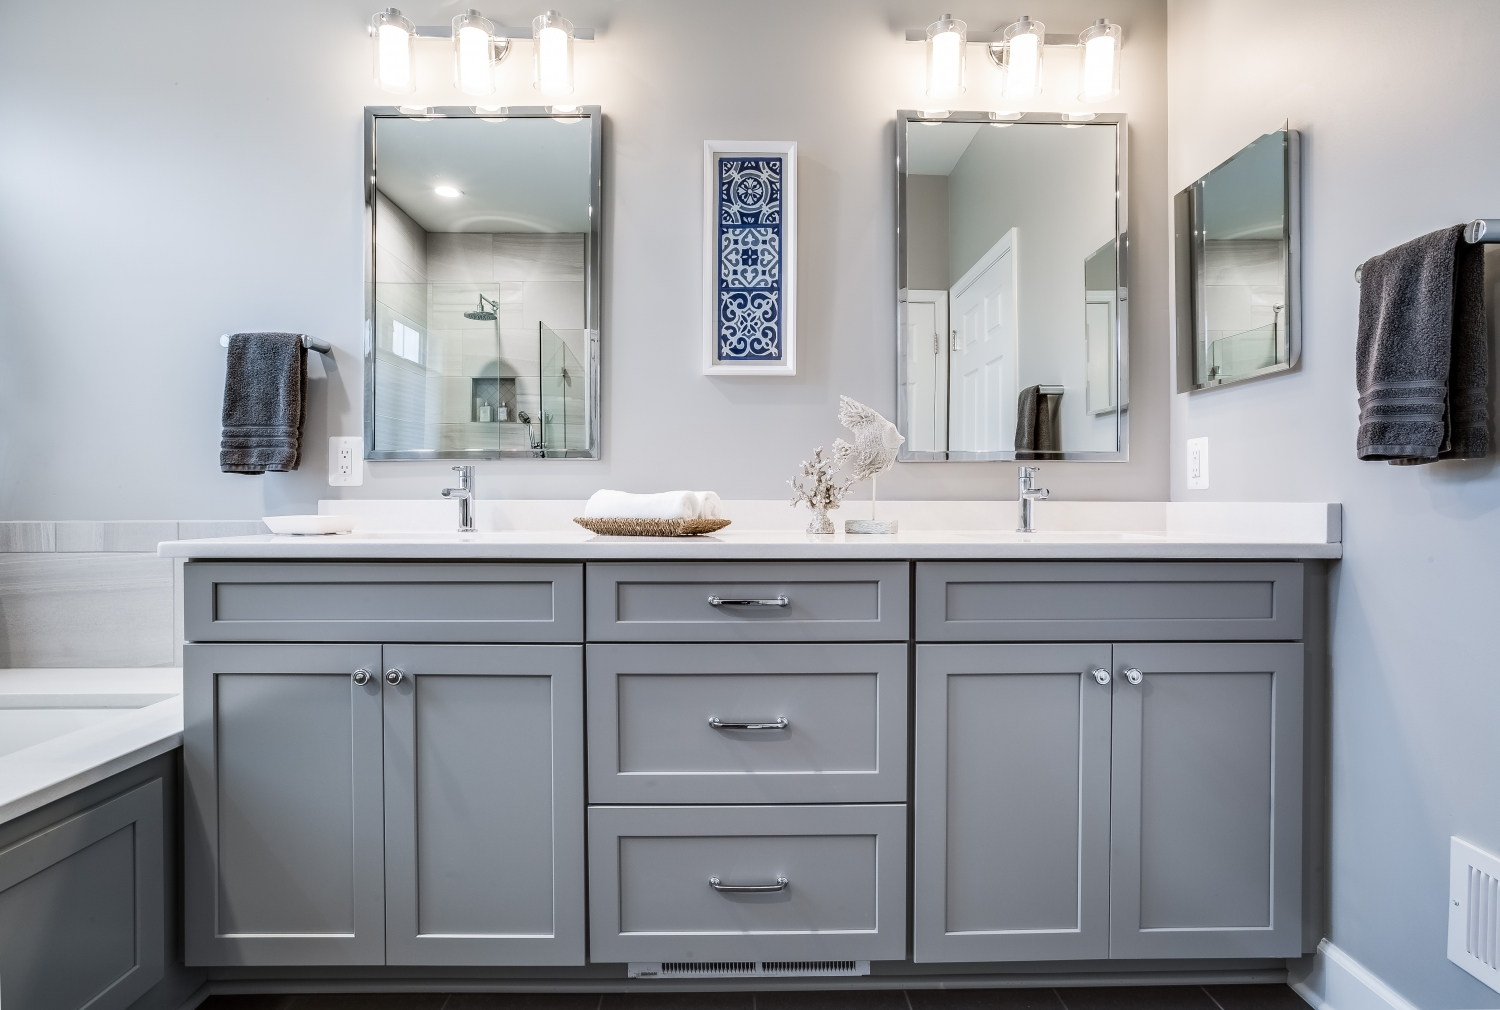 Choosing A Remodeling Contractor Foster Remodeling Company - Questions to ask contractor for bathroom remodel